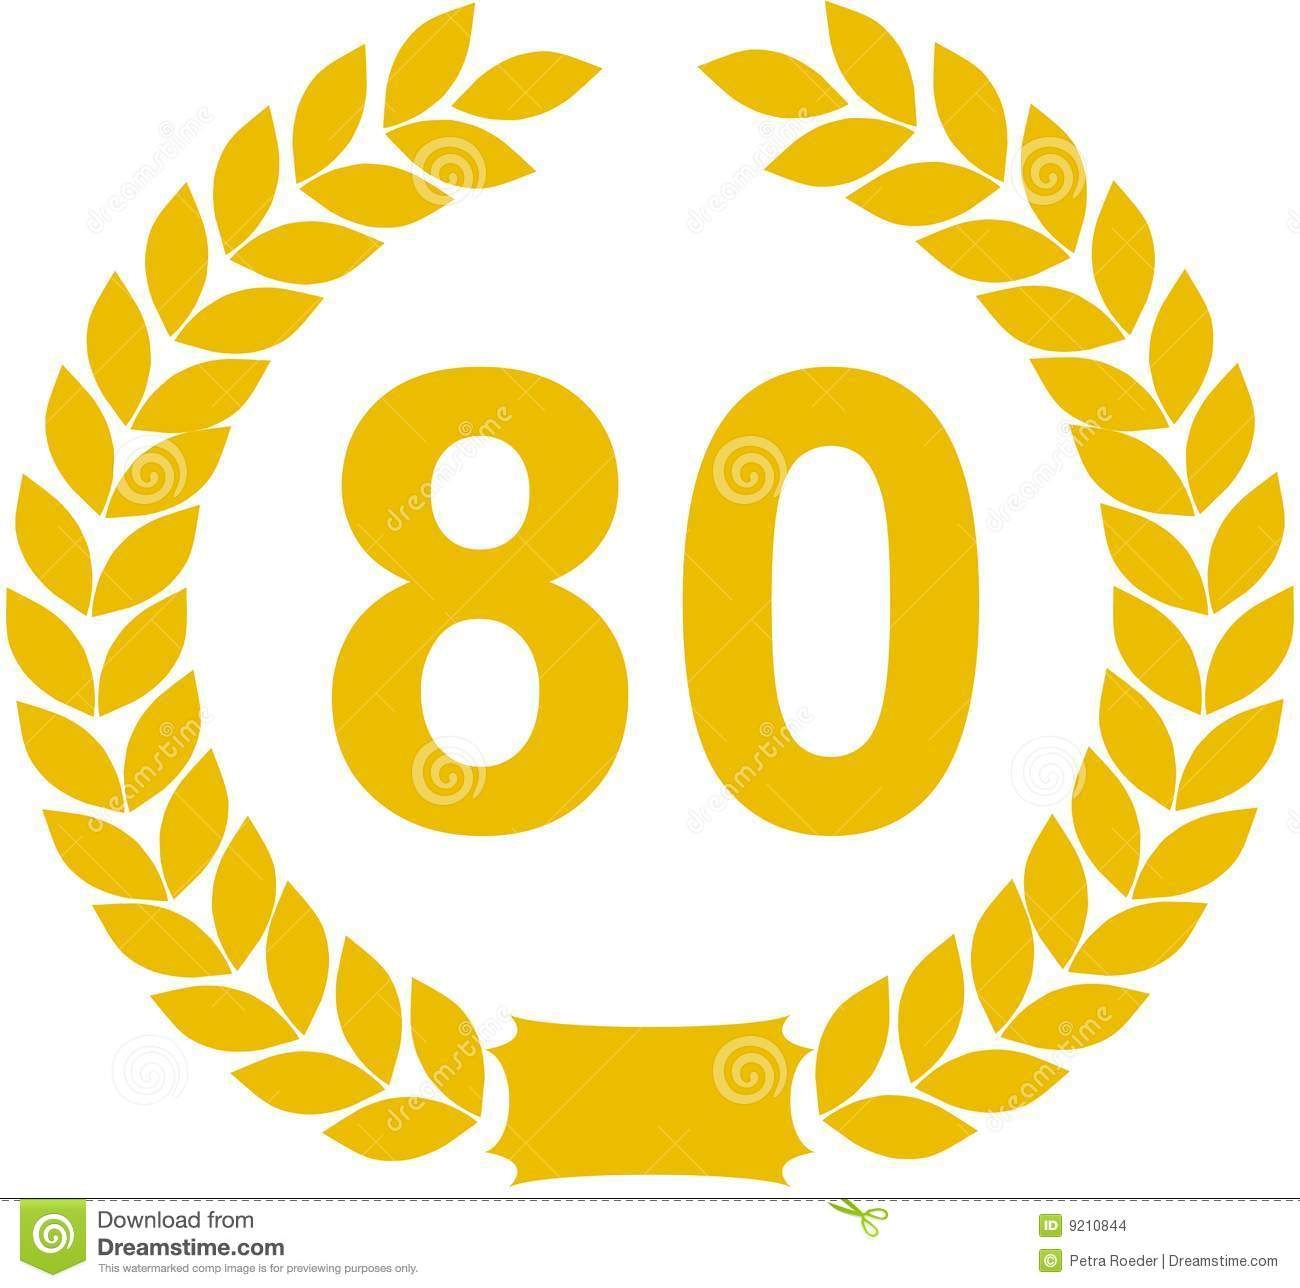 Illustration of a yellow wreath enclosing an 80. Isolated on